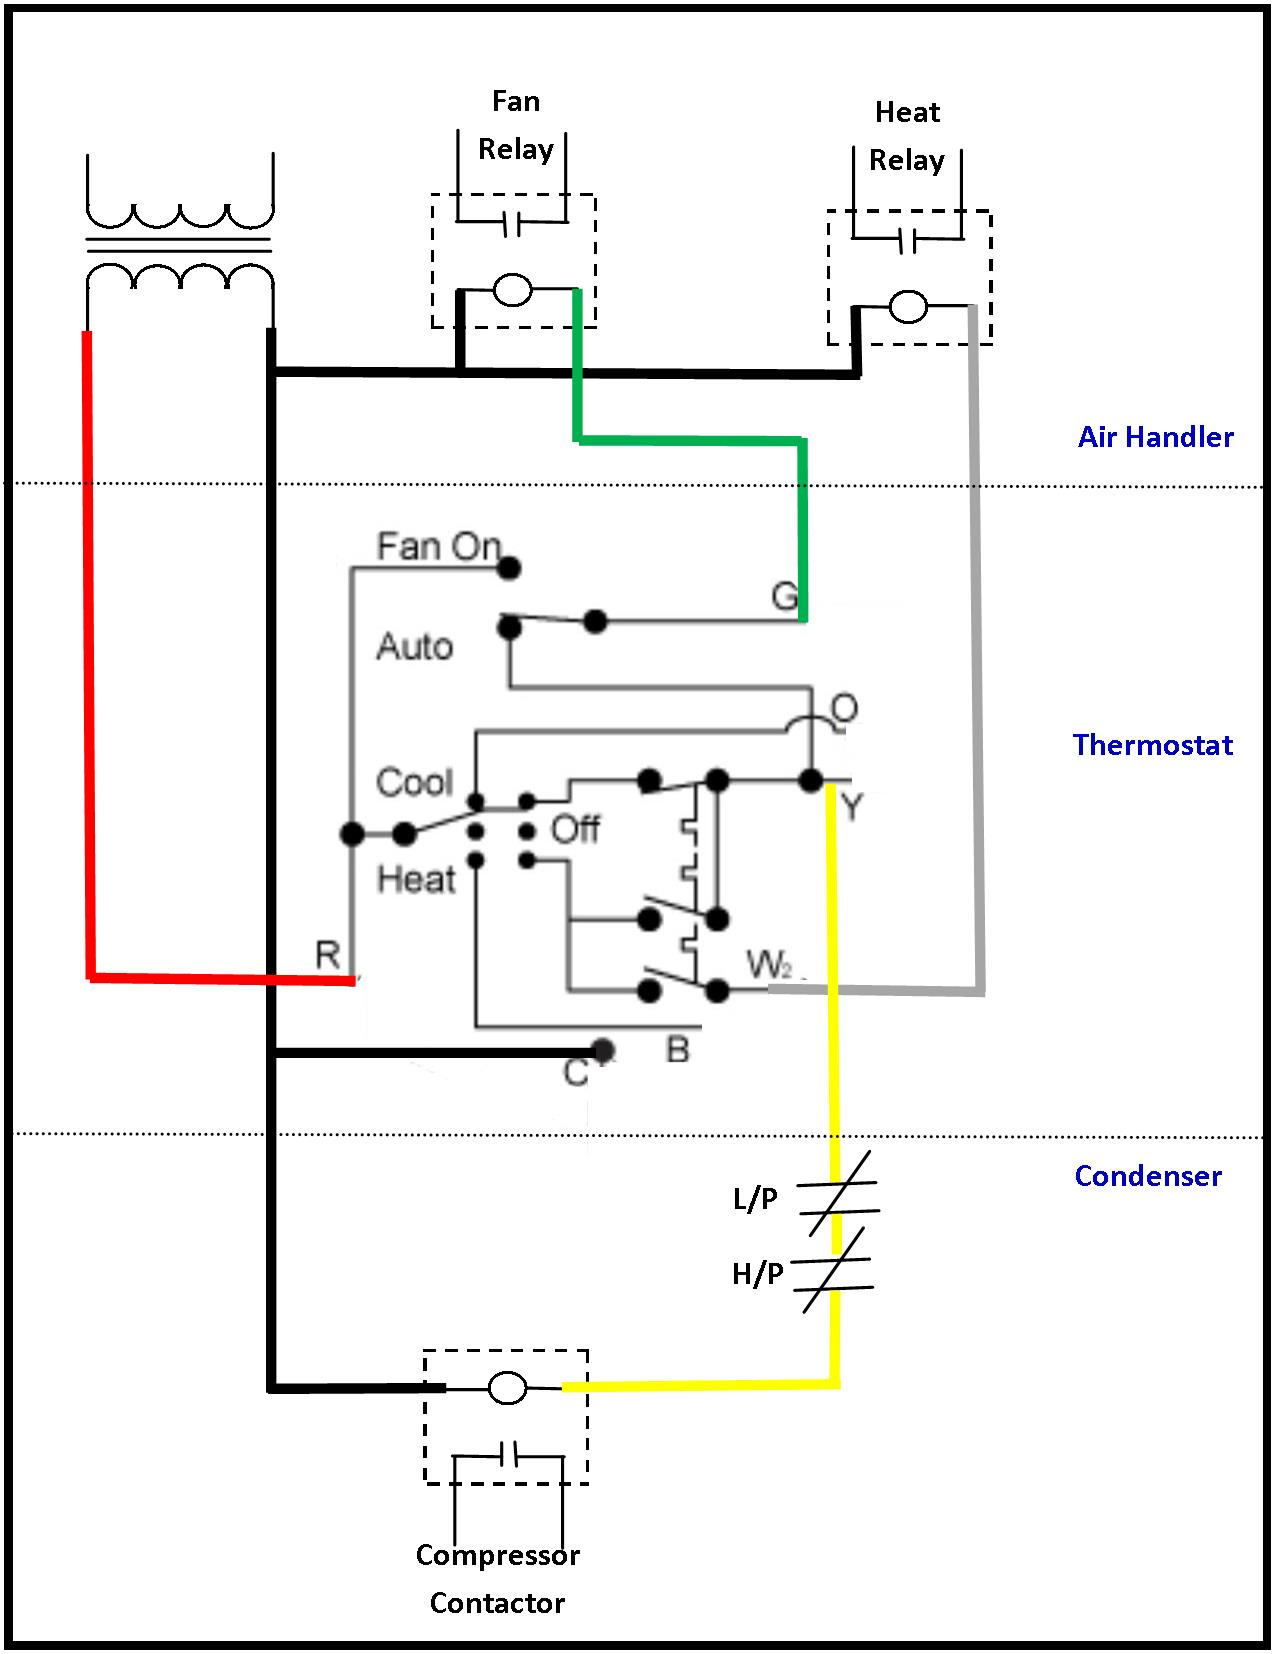 AC low voltage wiring diagram1 hvac wiring diagram efcaviation com hvac wiring schematics at eliteediting.co